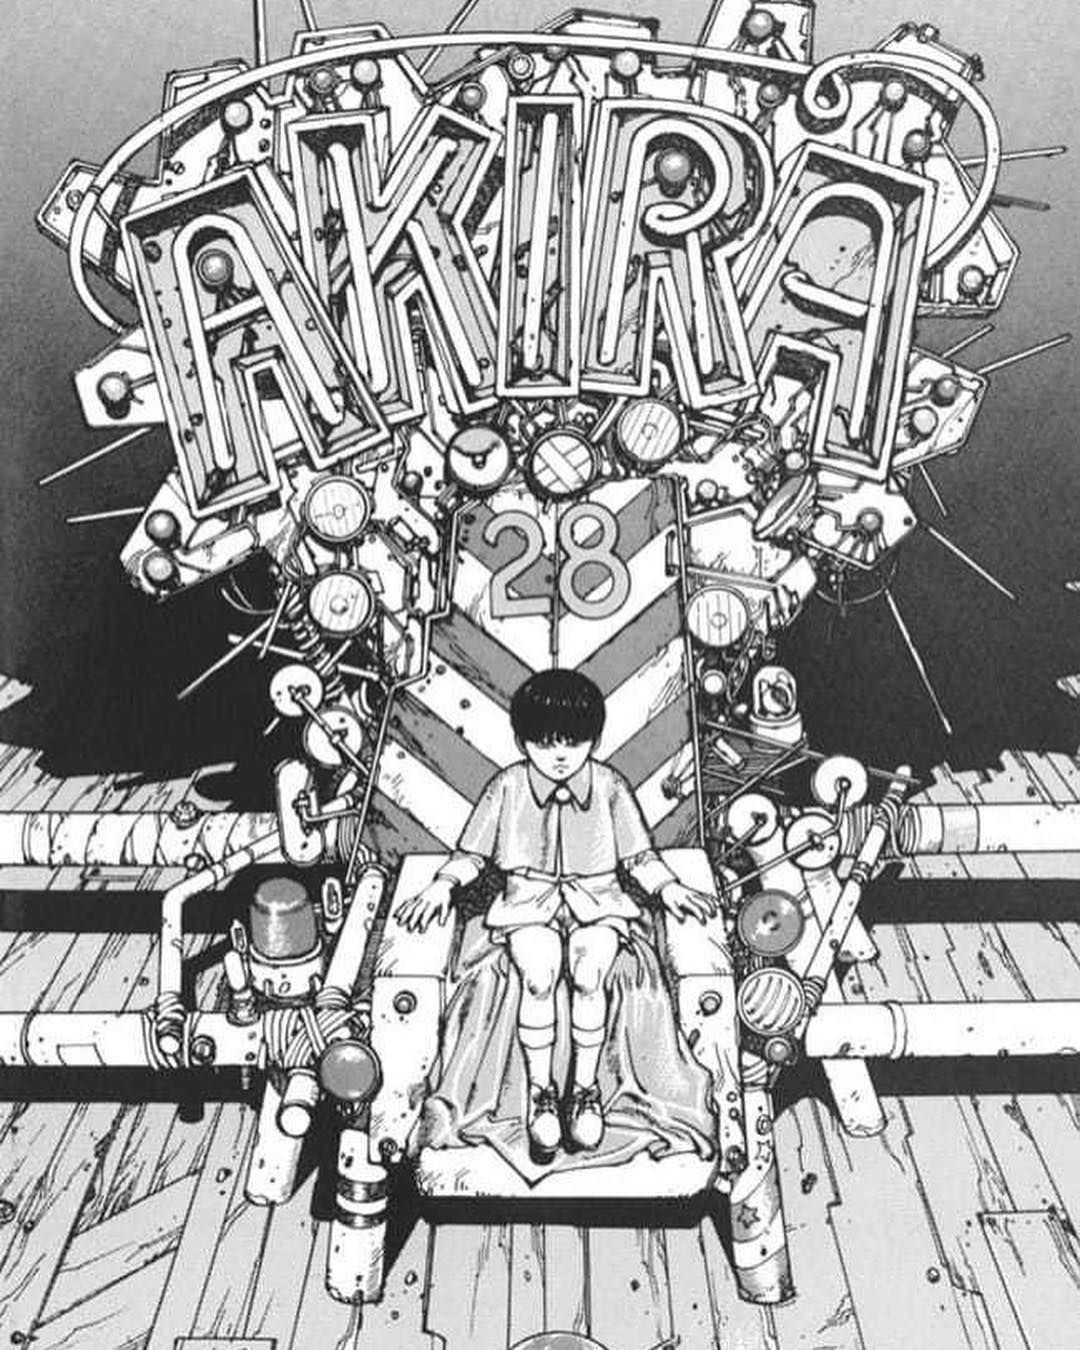 𝕿 𝕷𝖚𝖌𝖔 On Instagram Some Manga Panels I D Love To Tattoo Email Me If Interested Manga Innernerd Booksalwaysopen Akira Manga Akira Katsuhiro Otomo